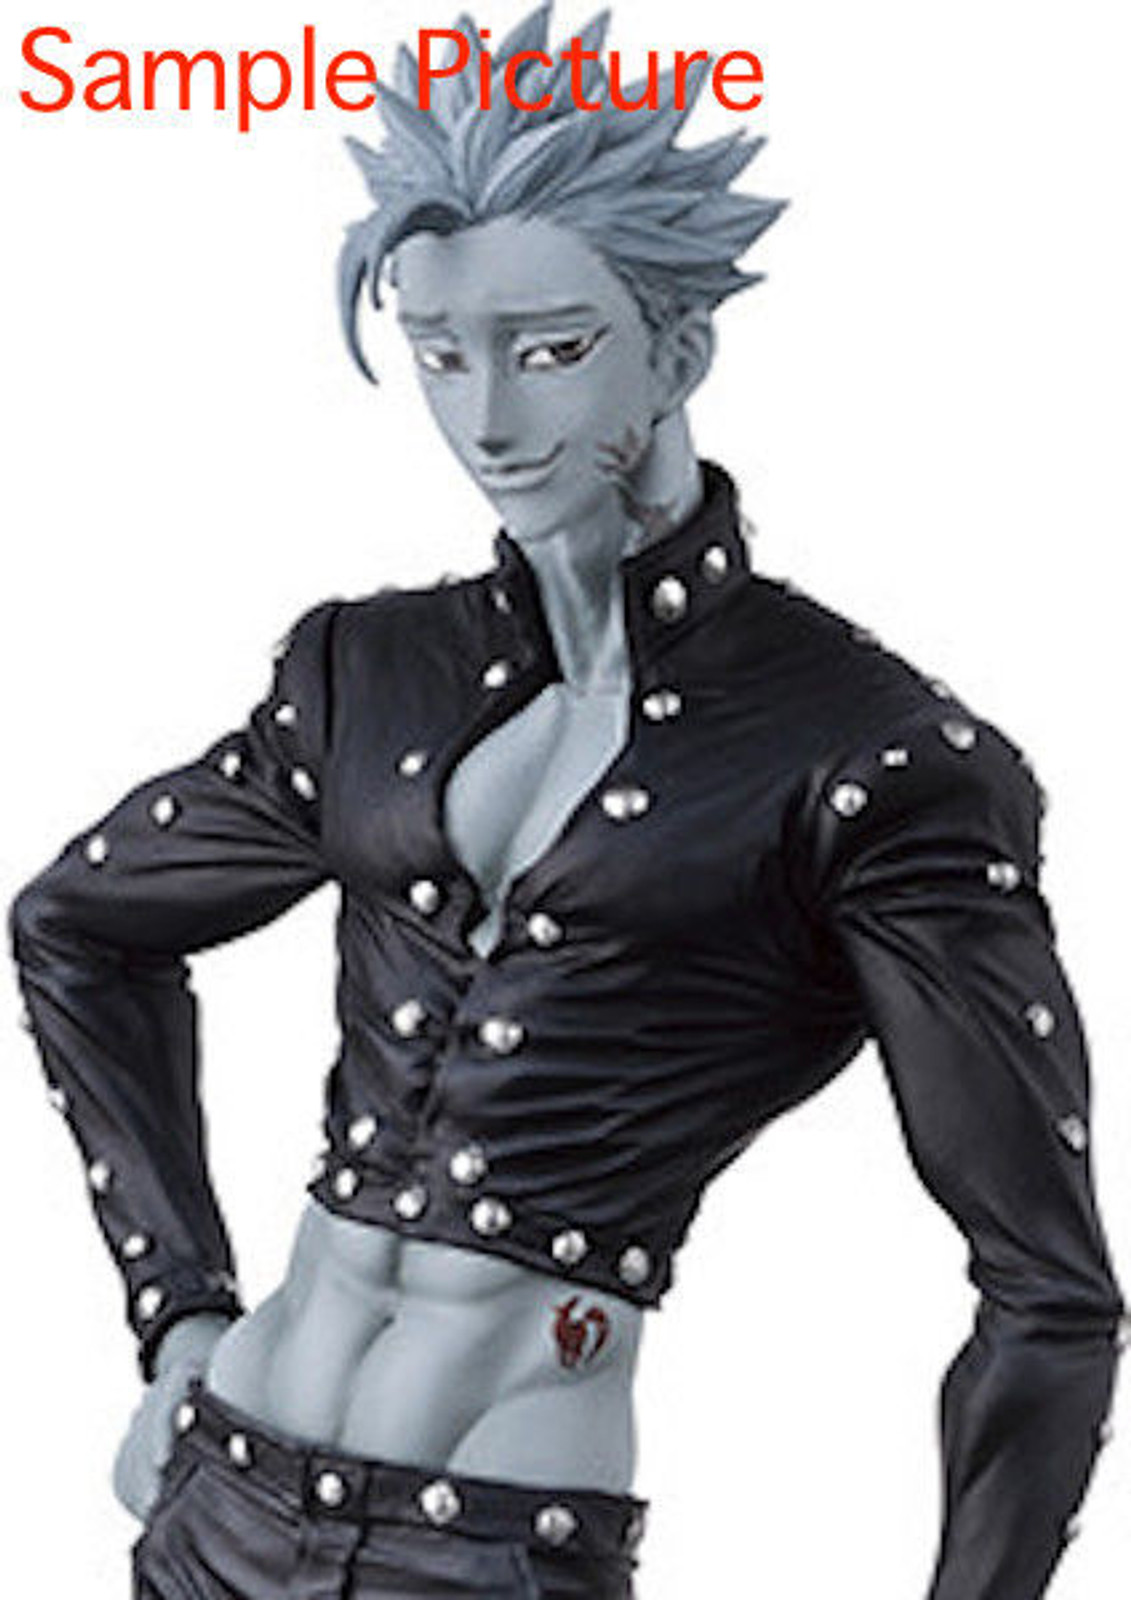 Seven Deadly Sins Ban Figure Monochrome Ver. Banpresto JAPAN ANIME MANGA